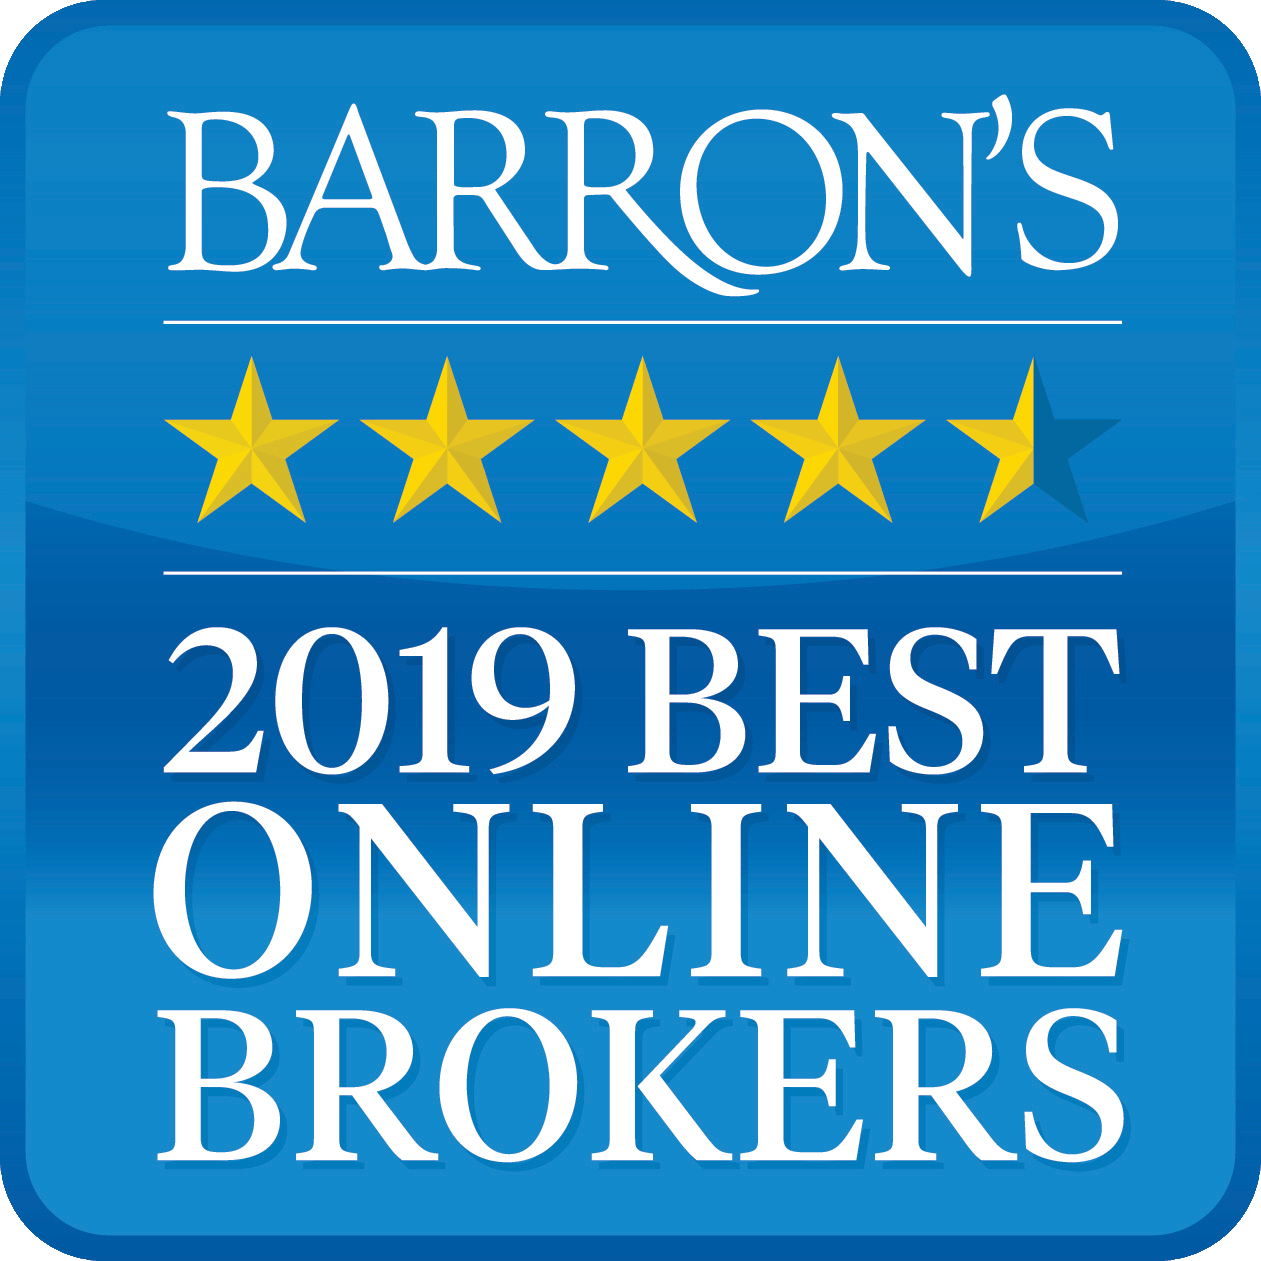 Barron's Rated a Top Online Broker for Nine Consecutive Years